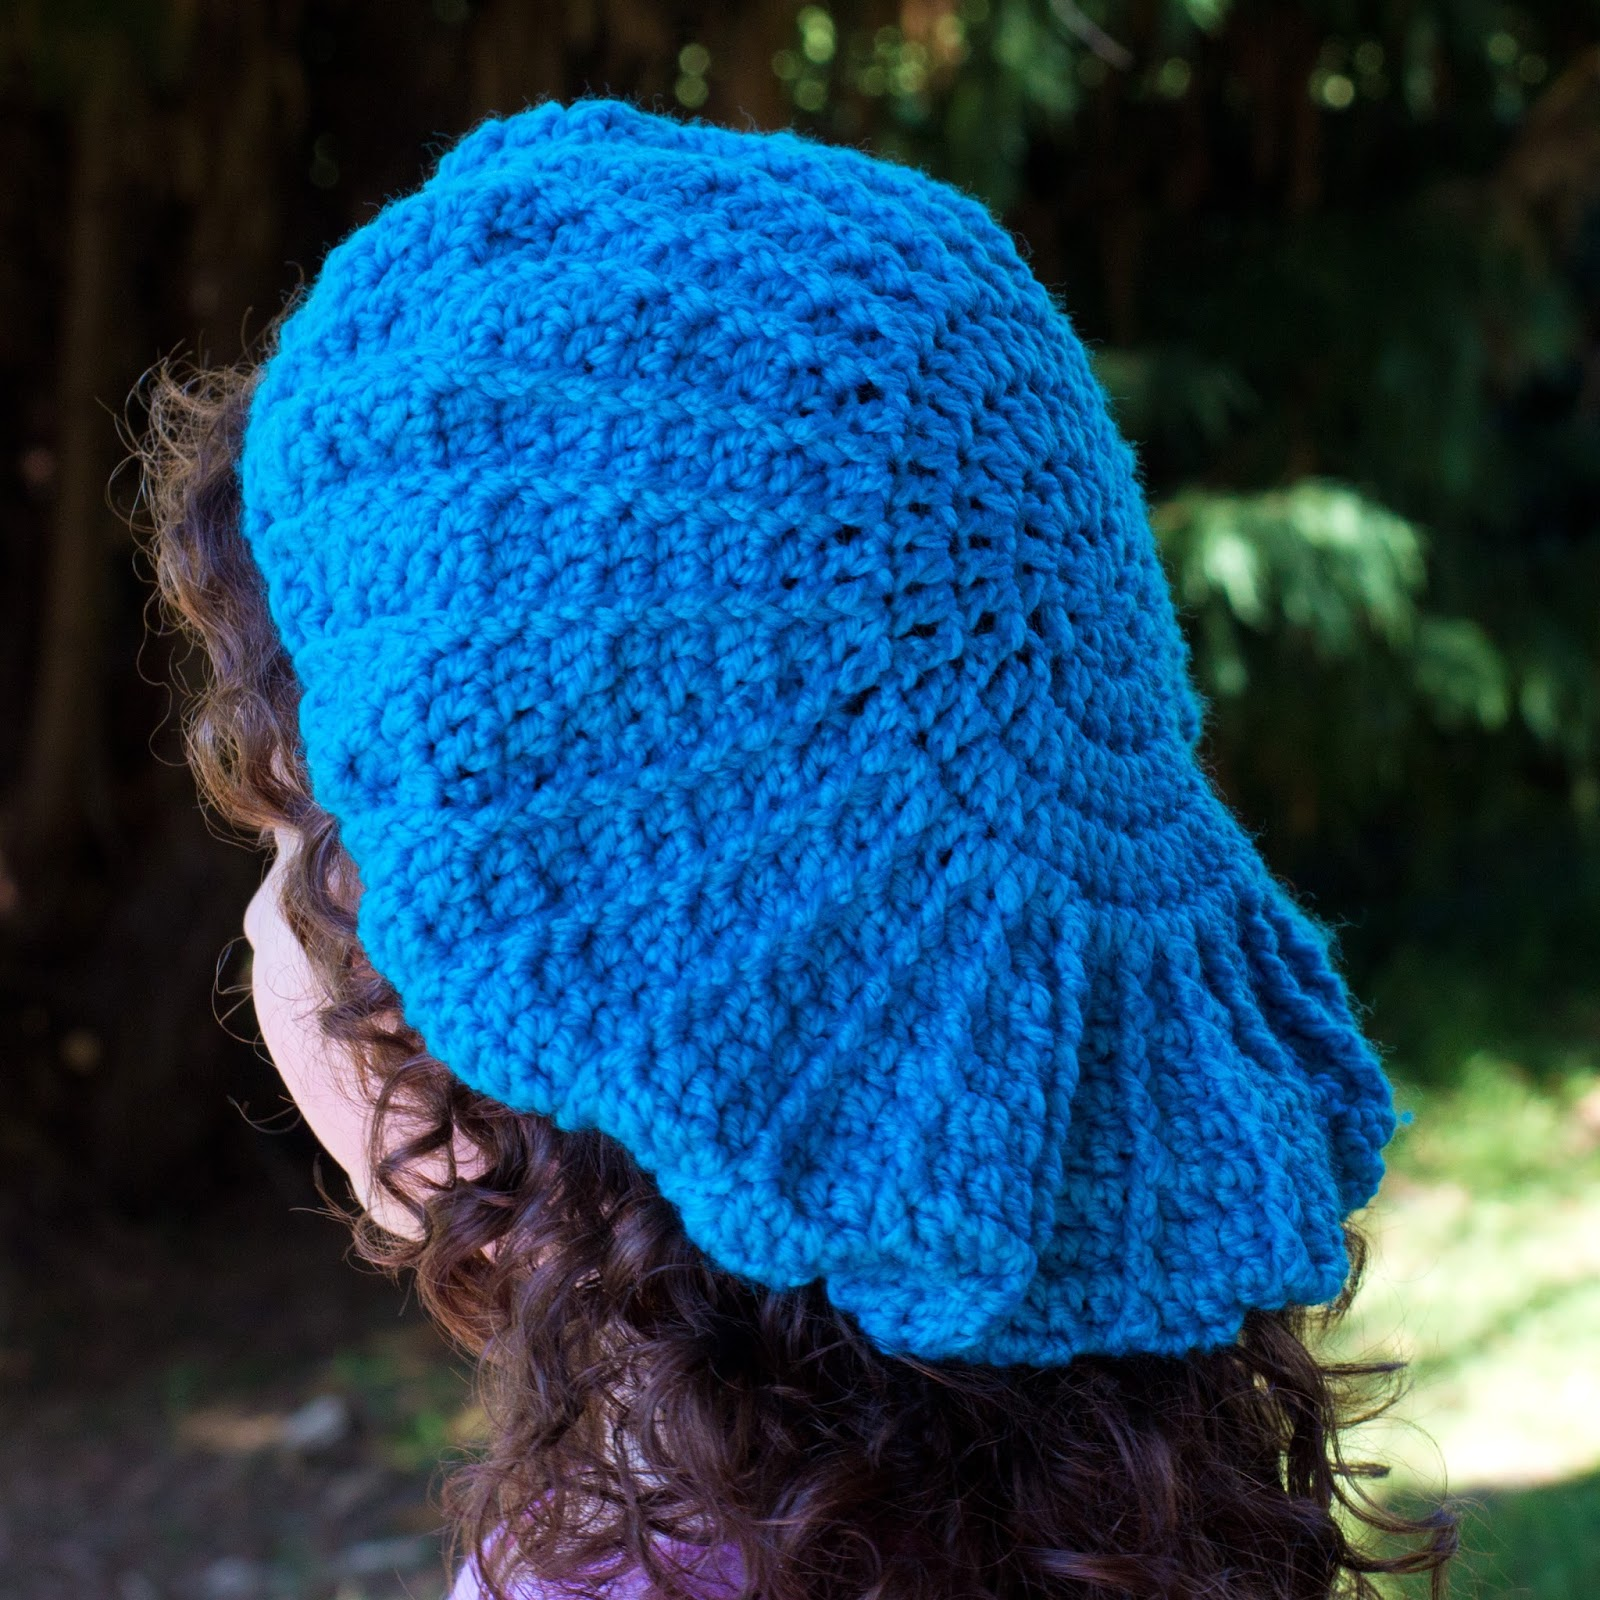 Crochet Stitches Unusual : ... Honey Craft, Crochet, Create: 10 Free Unique Hat Crochet Patterns